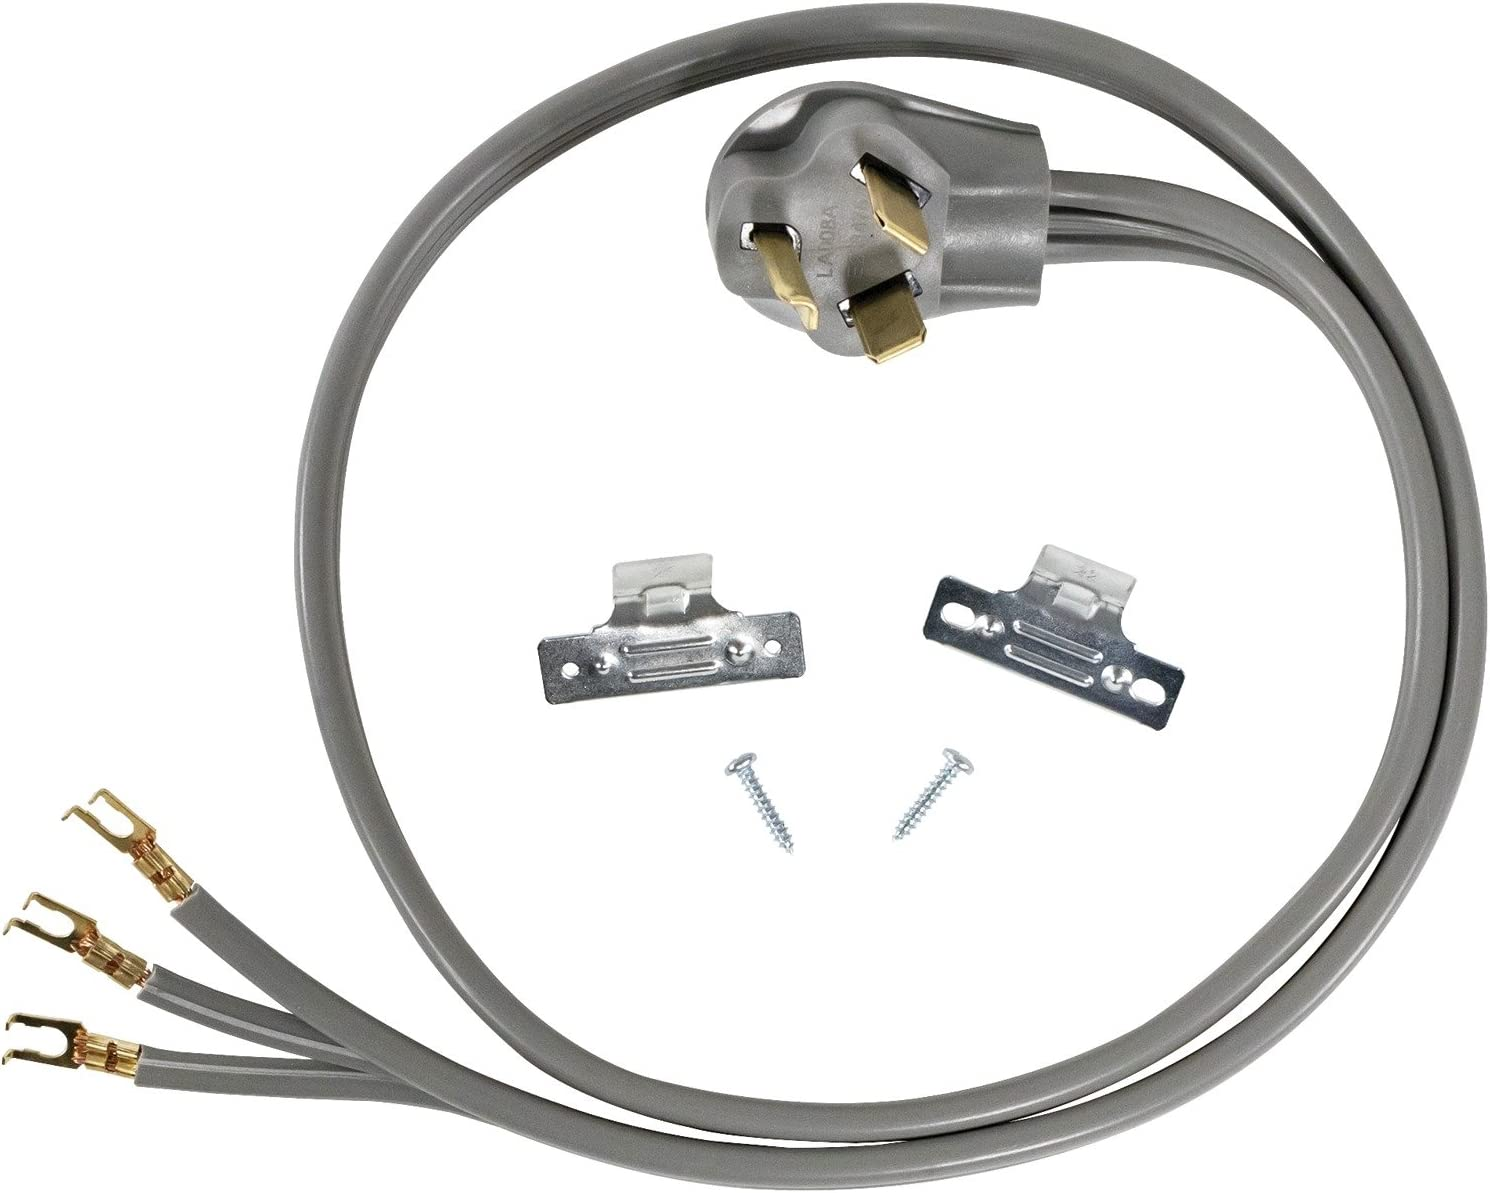 Certified Appliance Accessories 30-Amp Appliance Power Cord, 3 Prong Dryer Cord, 3 Wires with Open-End-Connectors, 5 Feet, Copper Wire